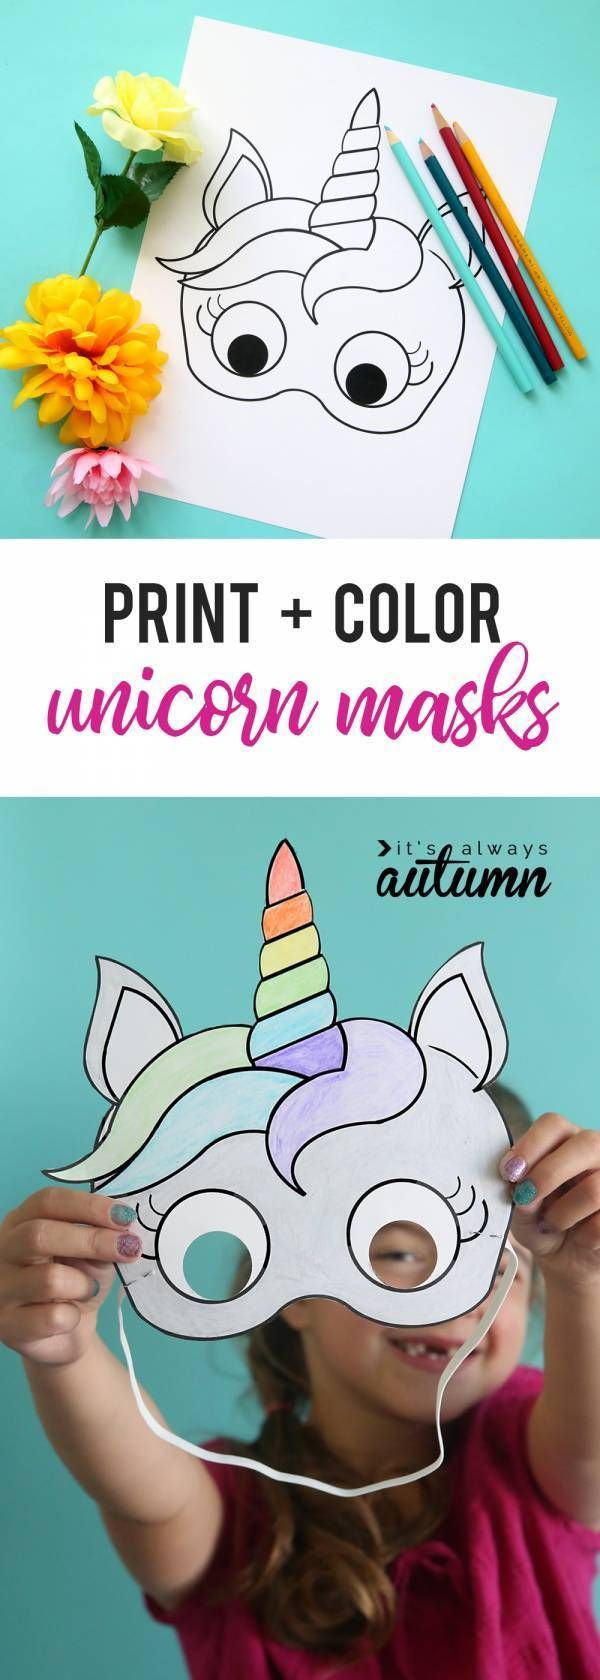 DIY | Unicorn Masks to Print and Color #unicorncrafts